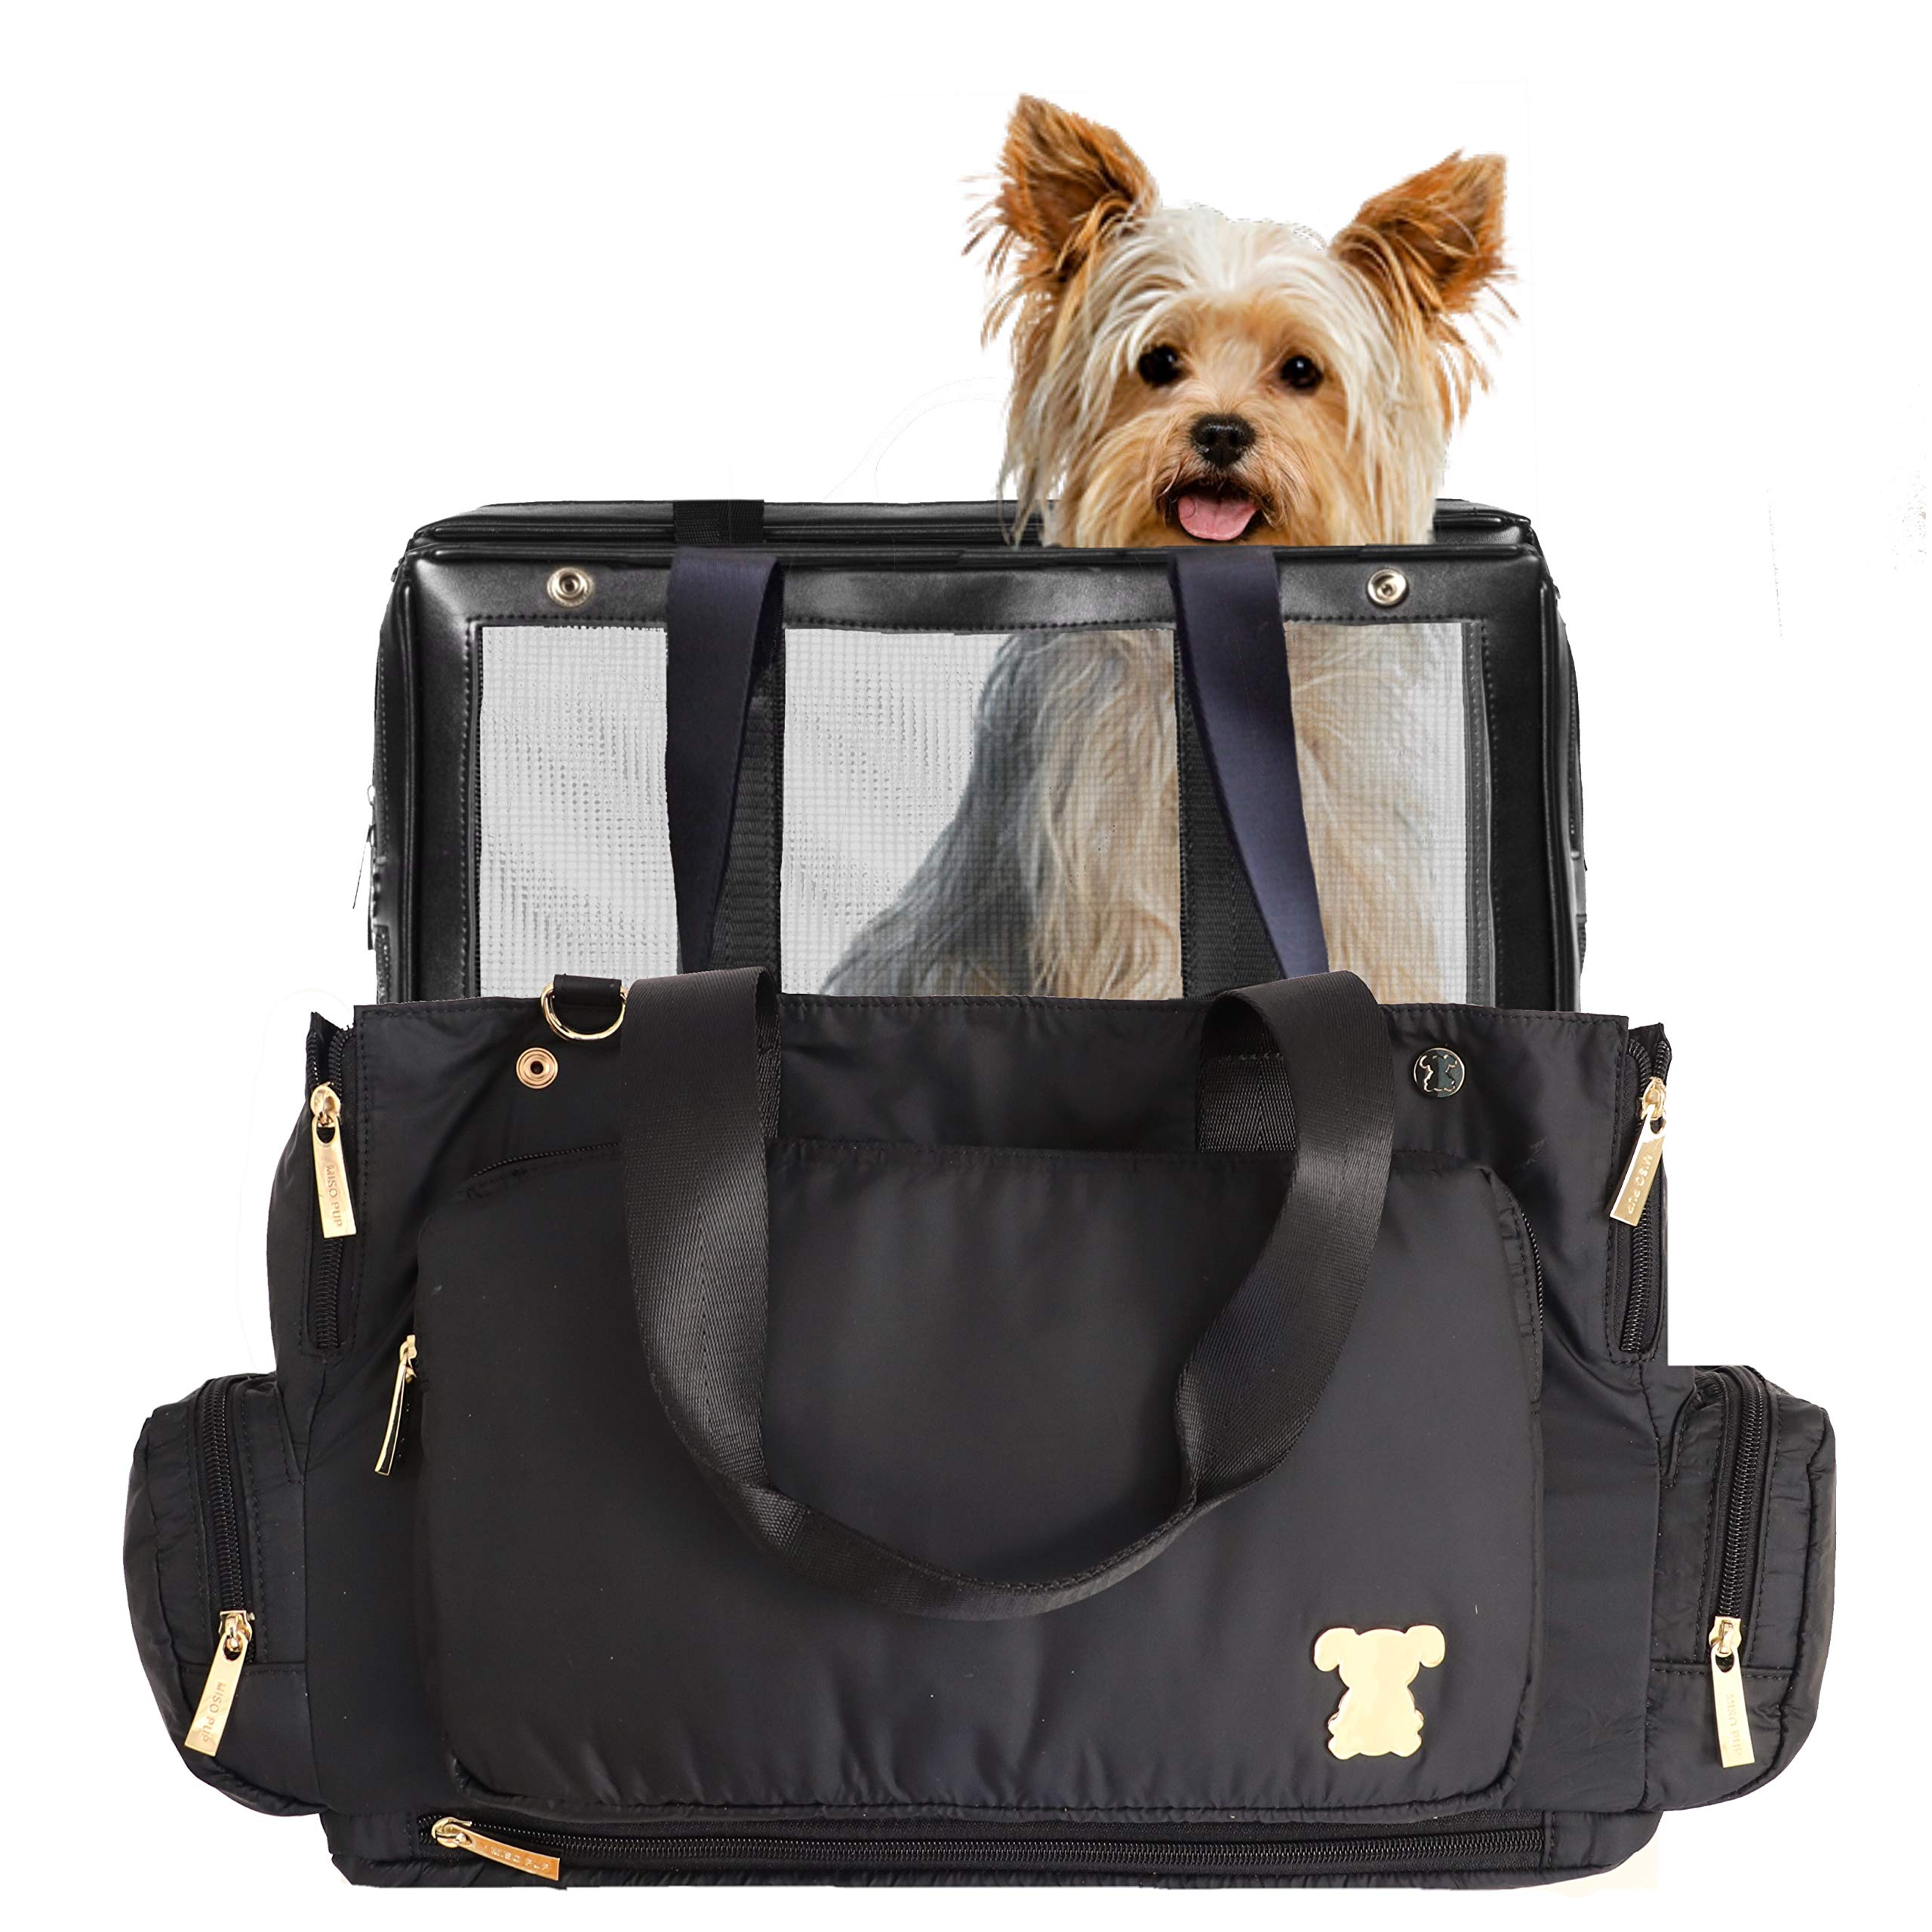 MISO PUP Unisex Flight Bag Interchangeable Airline Approved Pet Carrier Combo Ultra Lightweight with Pockets for Small Dogs (Pet Carrier Base & Shell Tote) by MISO PUP